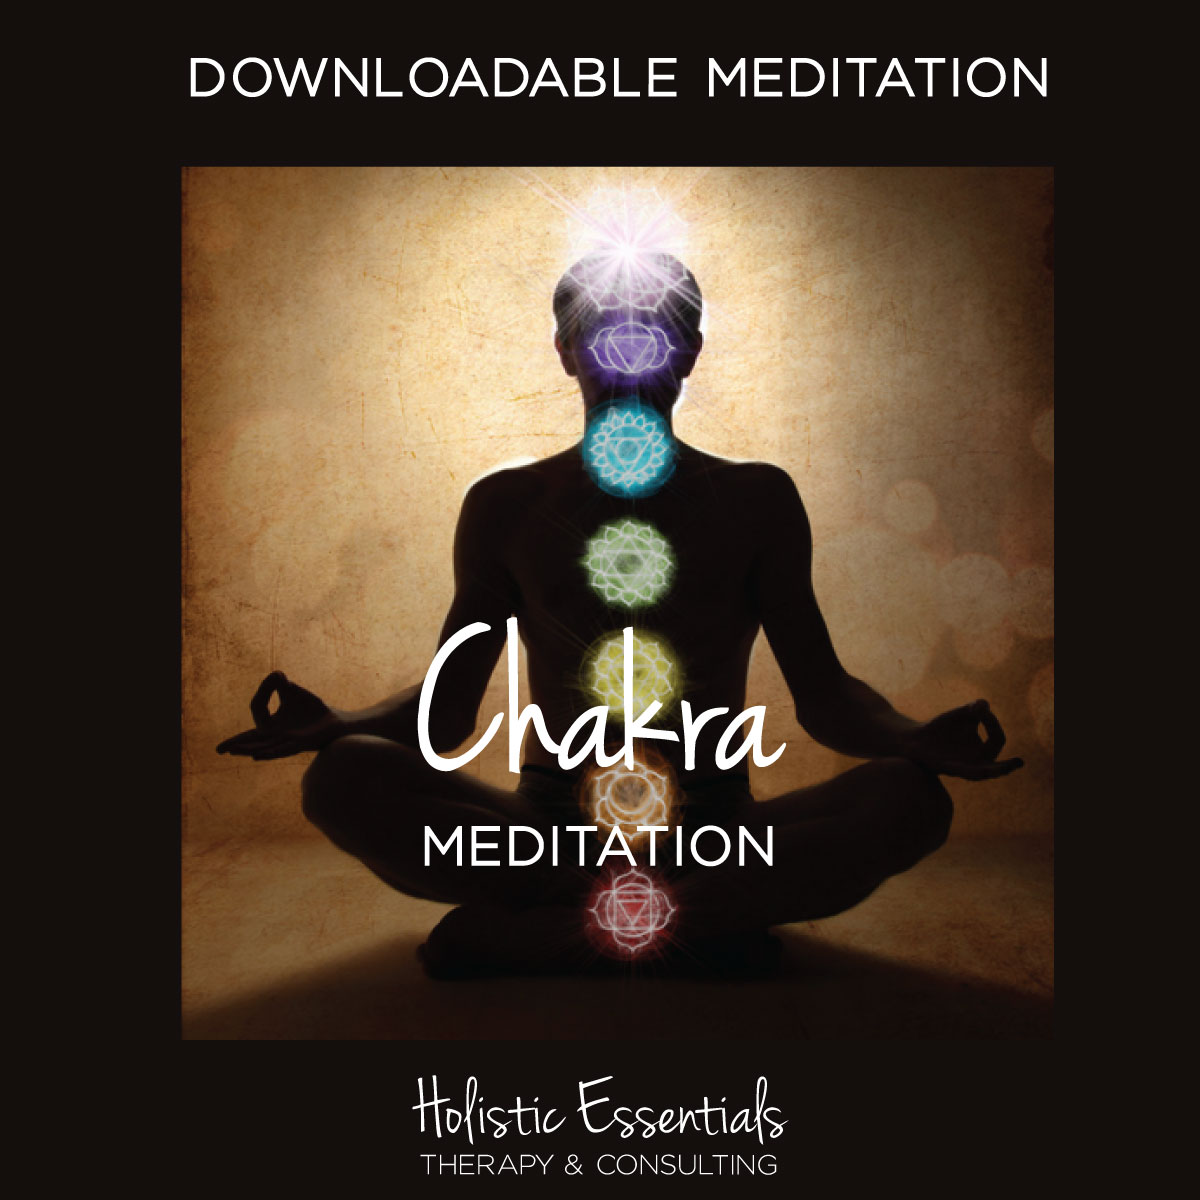 Chakra Meditation - Holistic Essentials